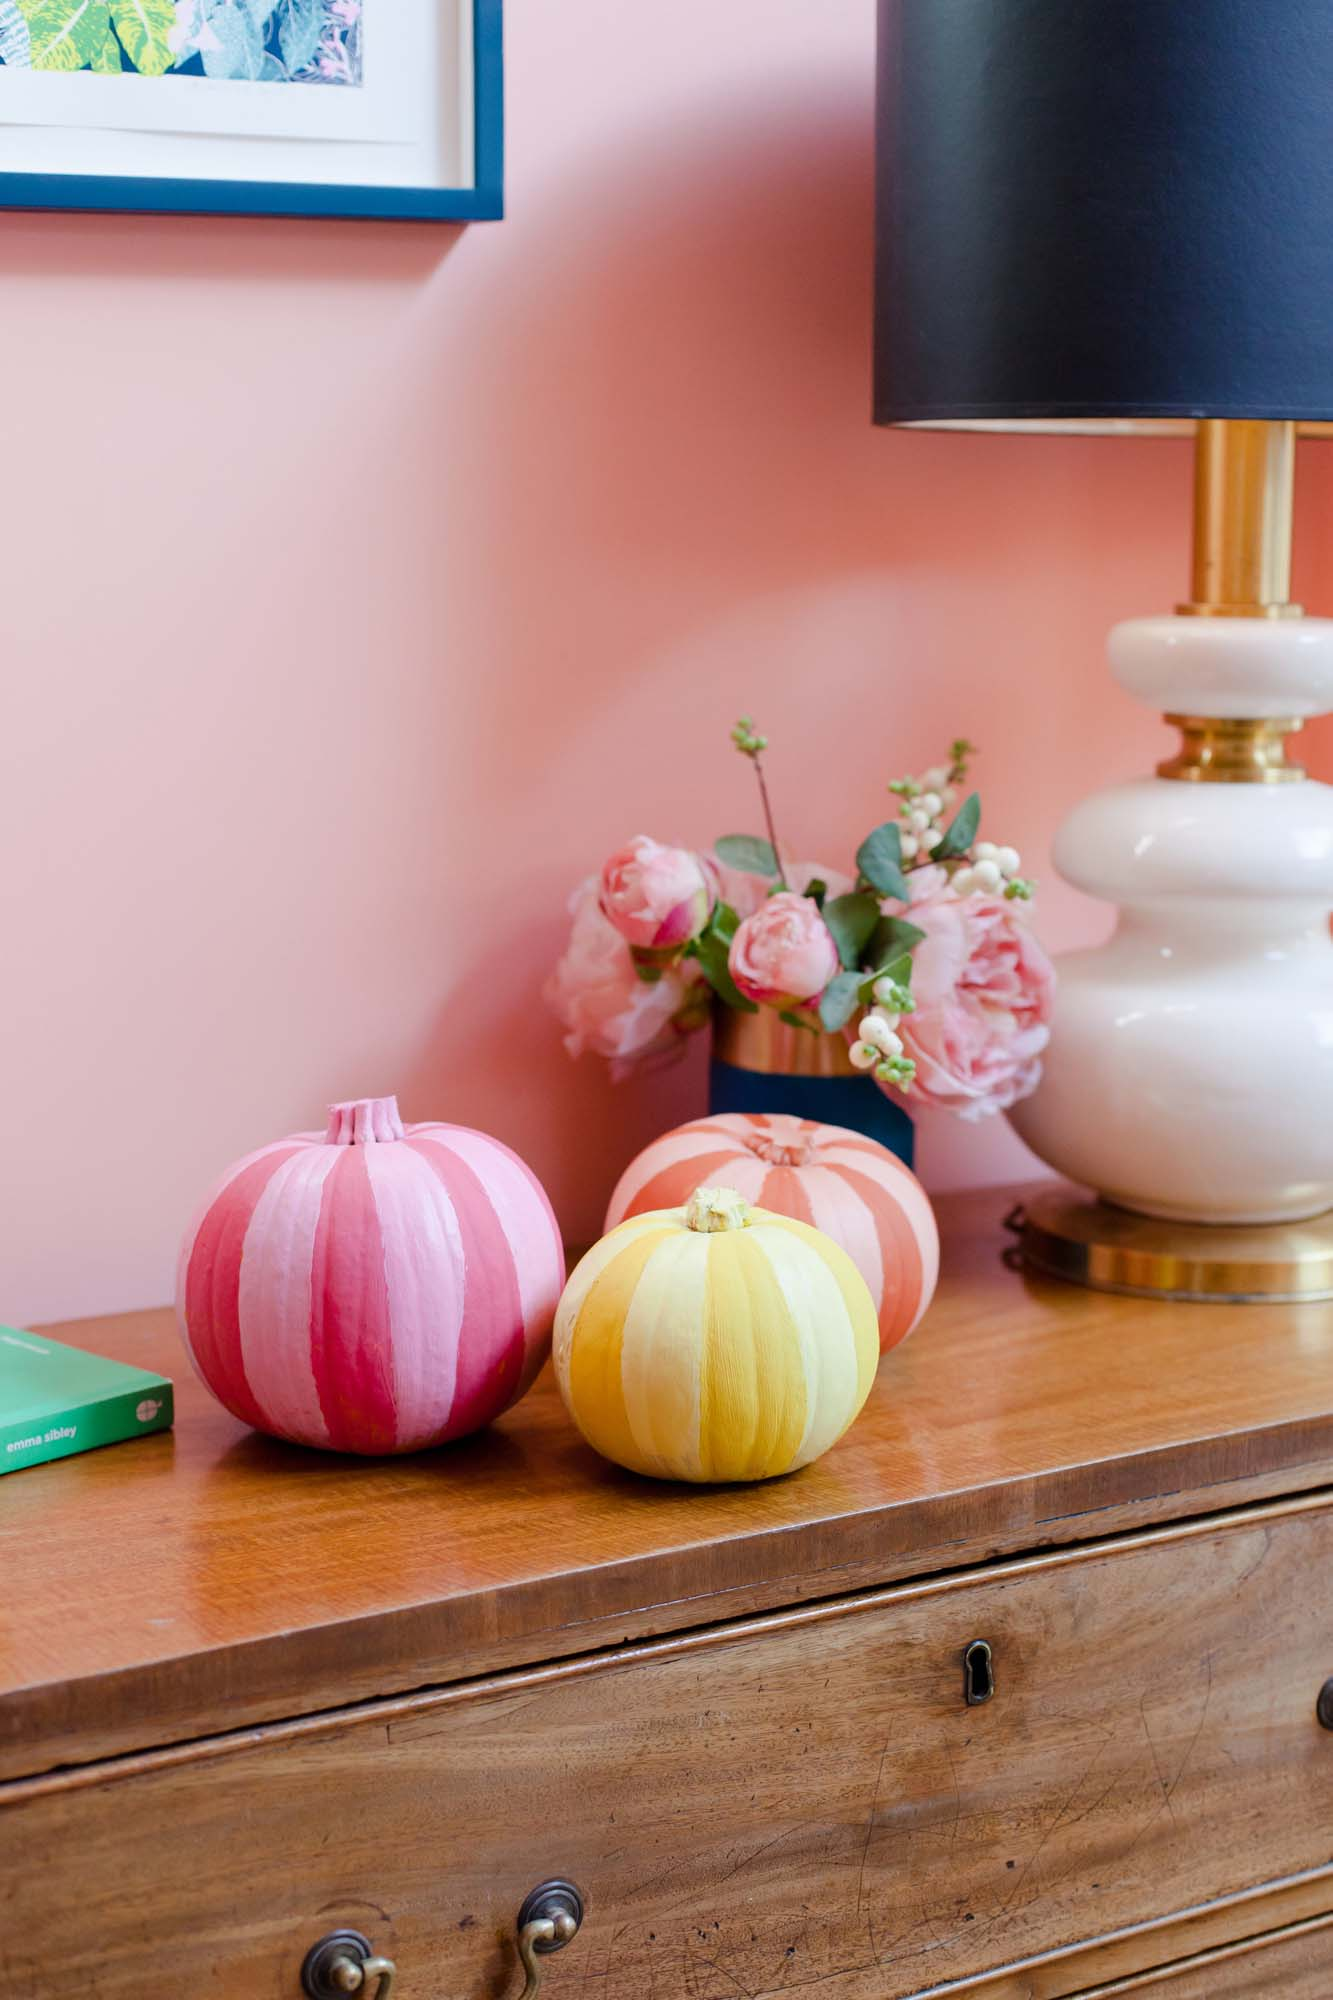 Stripy painted pumpkins in pink, orange and yellow